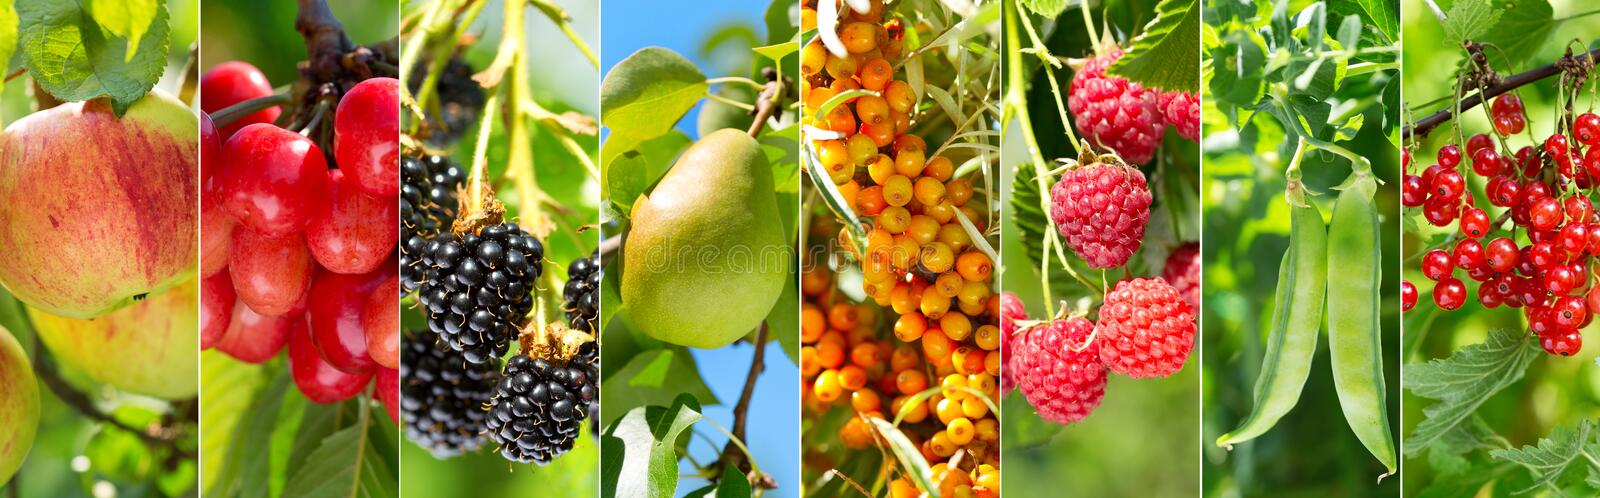 Collage of various fruits and berries royalty free stock photos